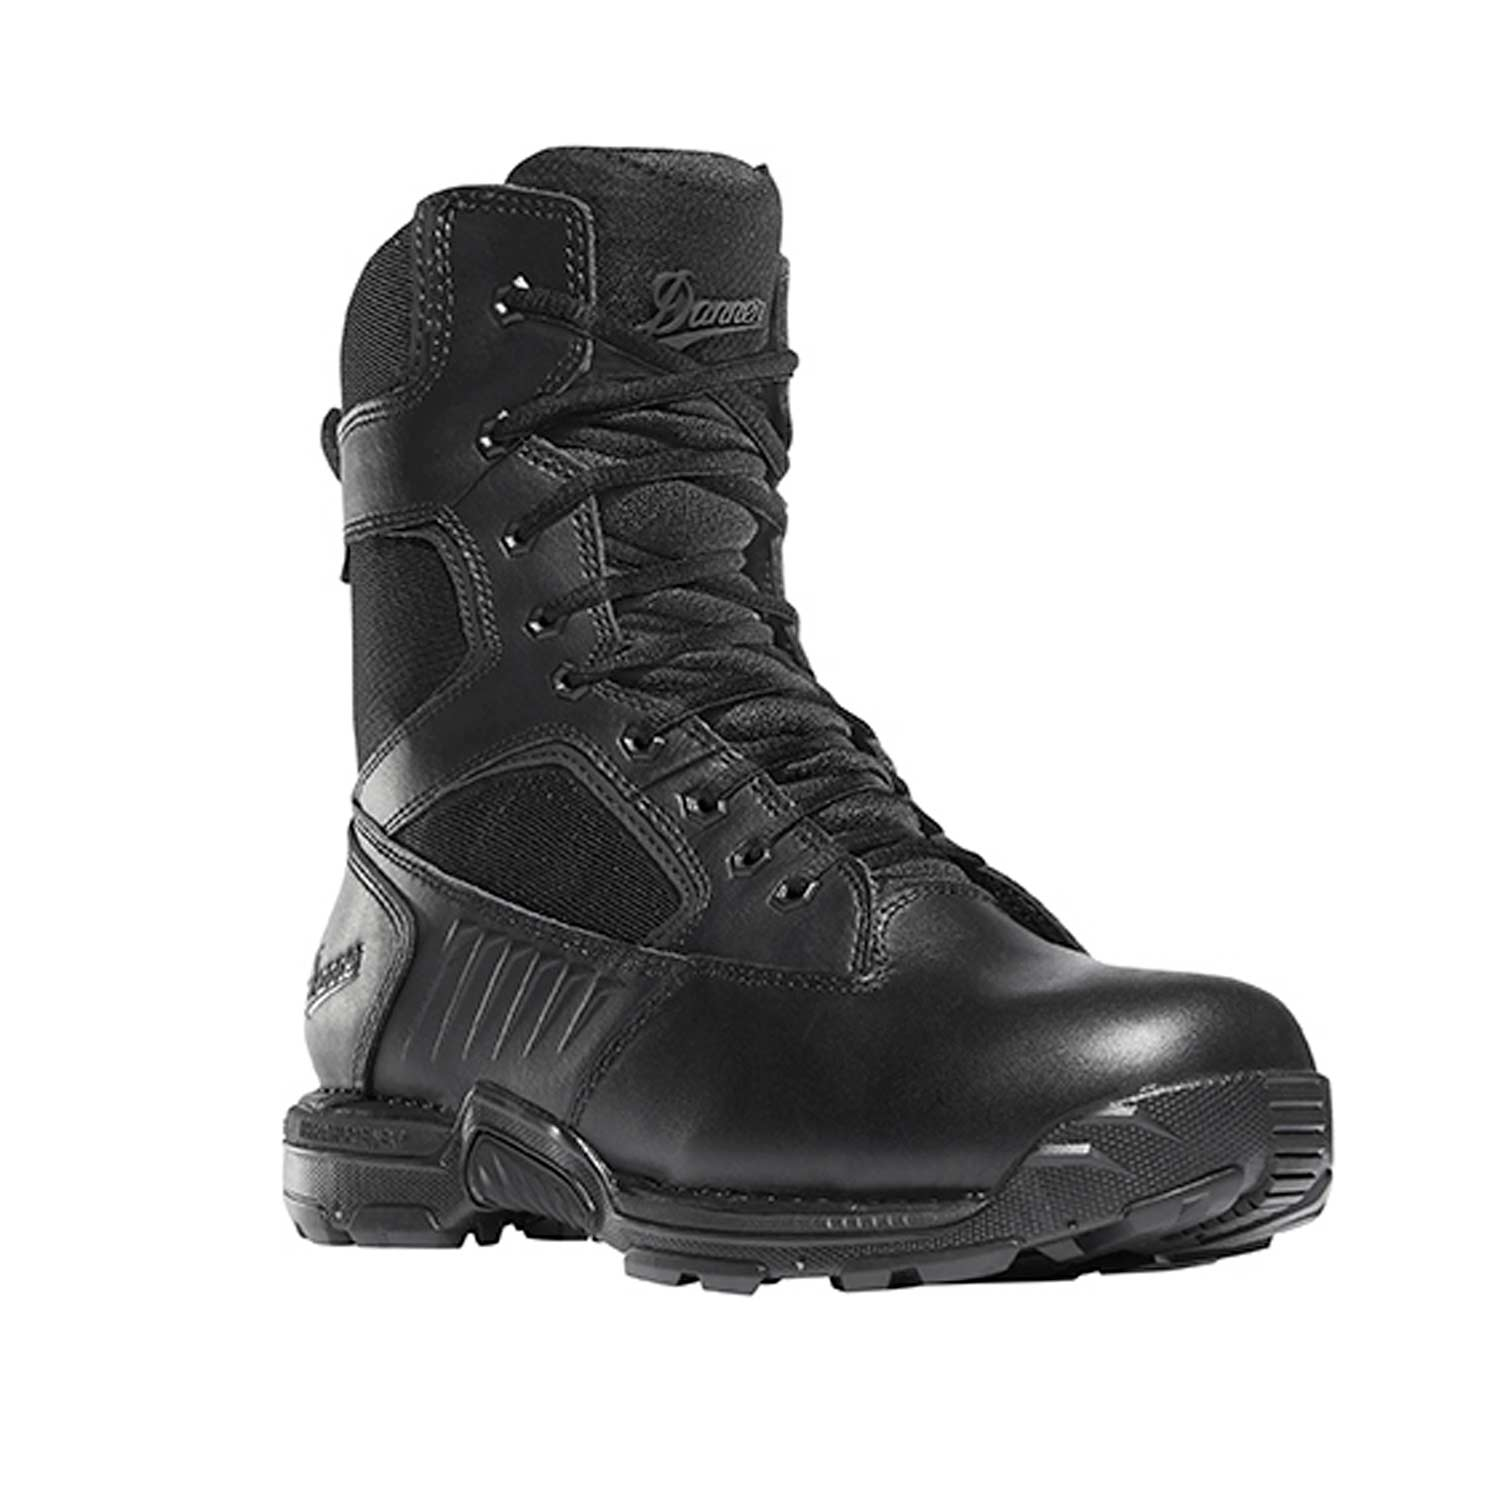 "Danner Striker Bolt 8"" Waterproof Side-Zip Boot"